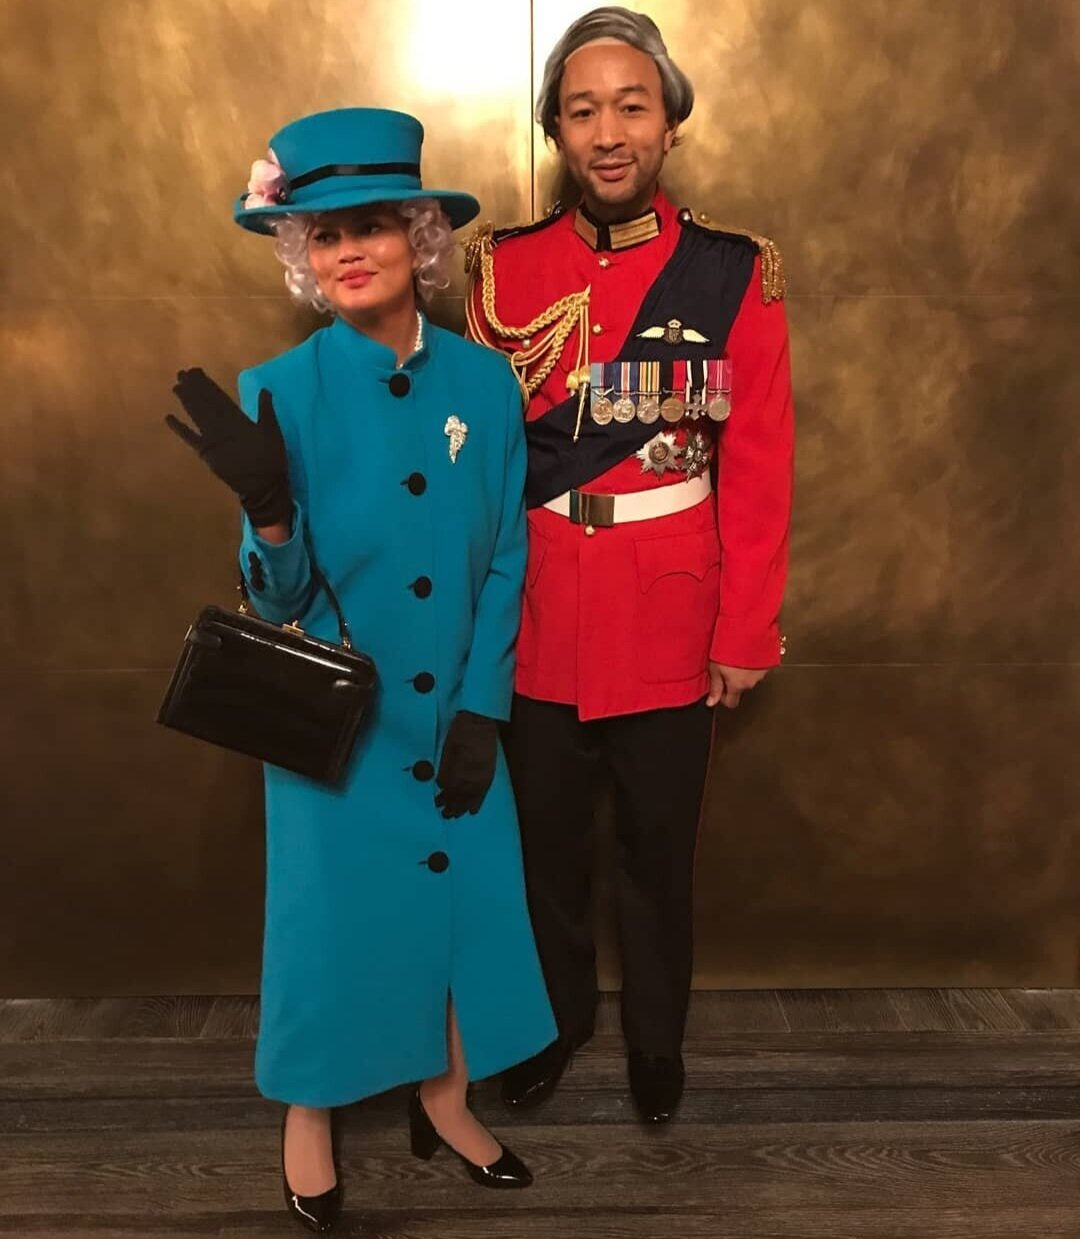 John Legend & Chrissy Tegein - This dynamic duo felt royal last year, dressing up as Queen Elizabeth and Prince Philip. Fun Fact: Season 3 of The Crown on Netflix premiers on Sunday, November 17, 2019.Instagram